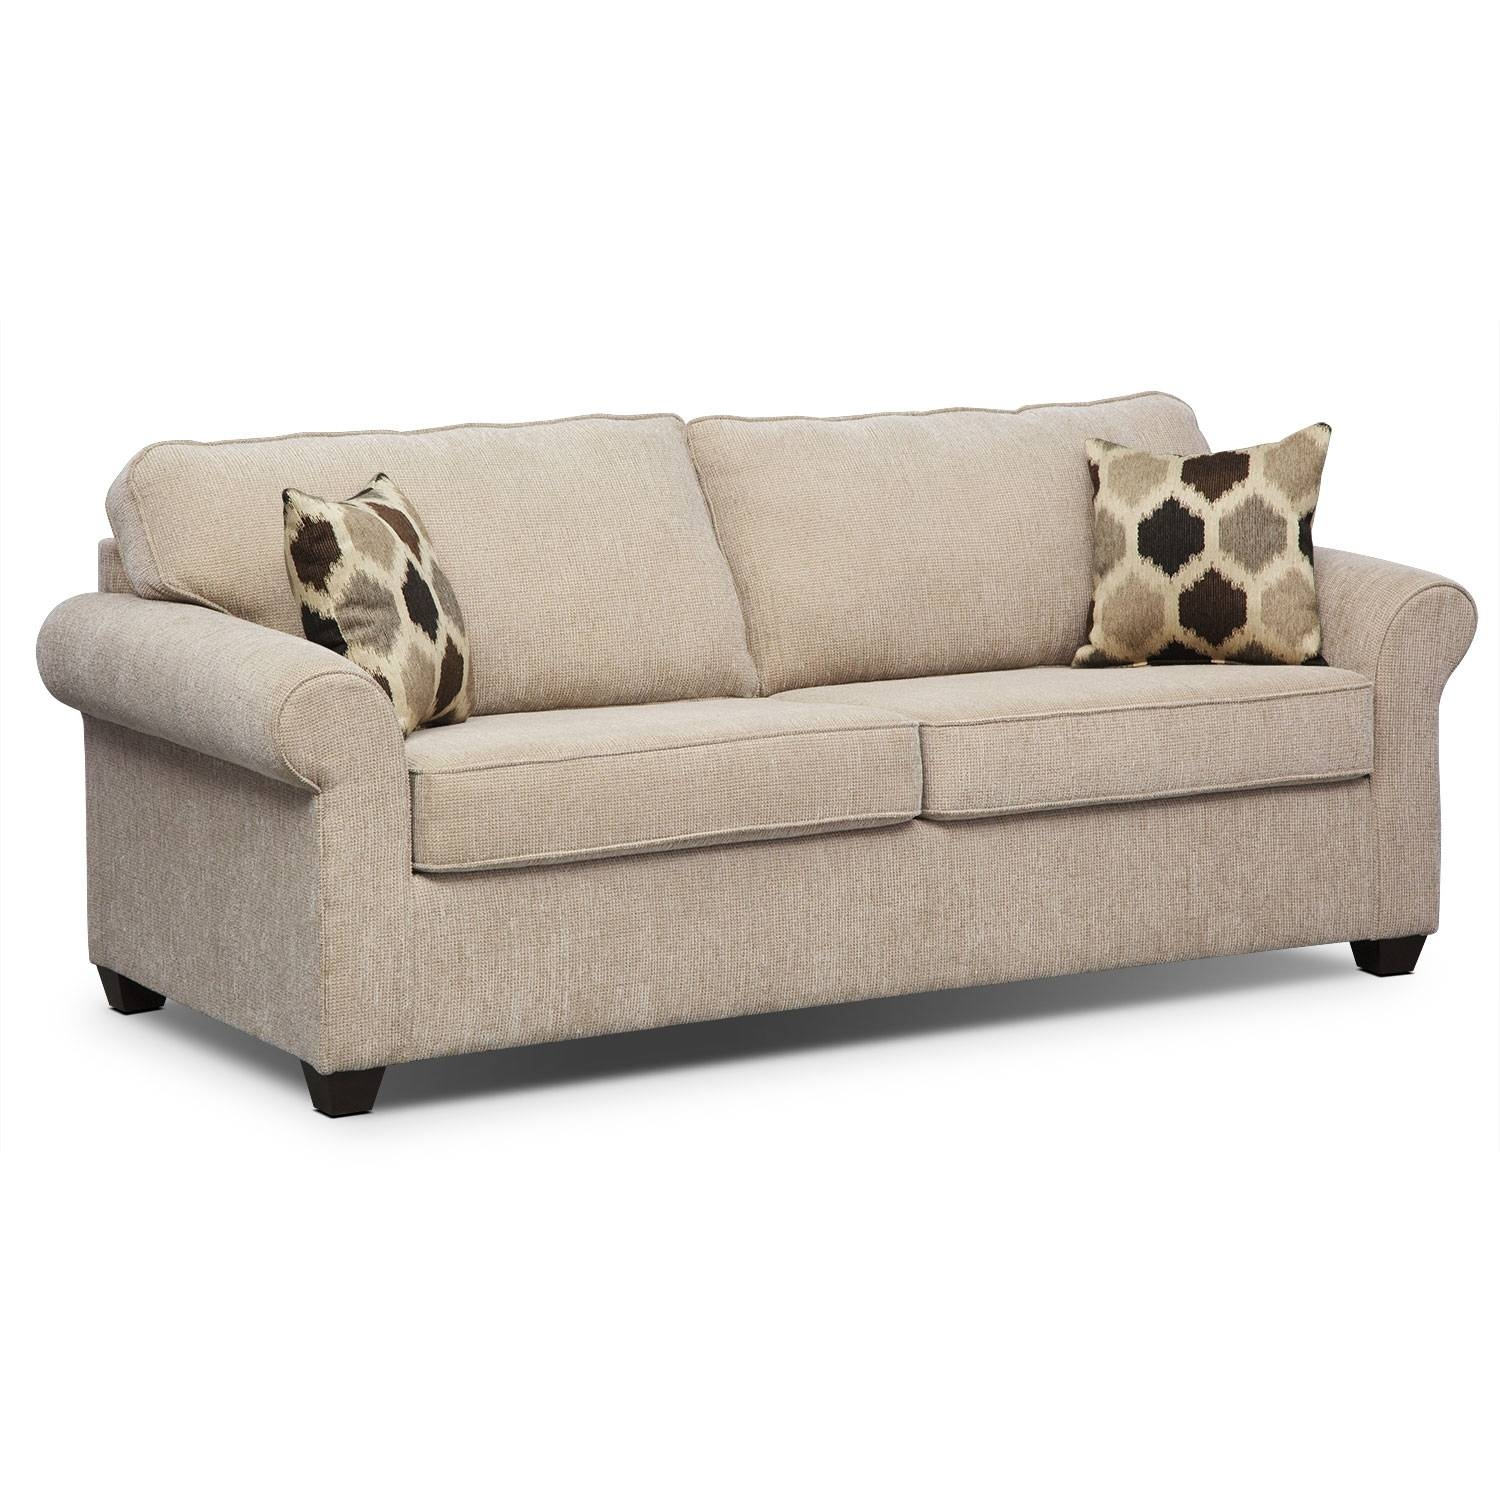 Beautiful Sofa Sleepers Queen Best Home Renovation Ideas With Intended For Sofa Sleepers Queen Size (View 1 of 30)